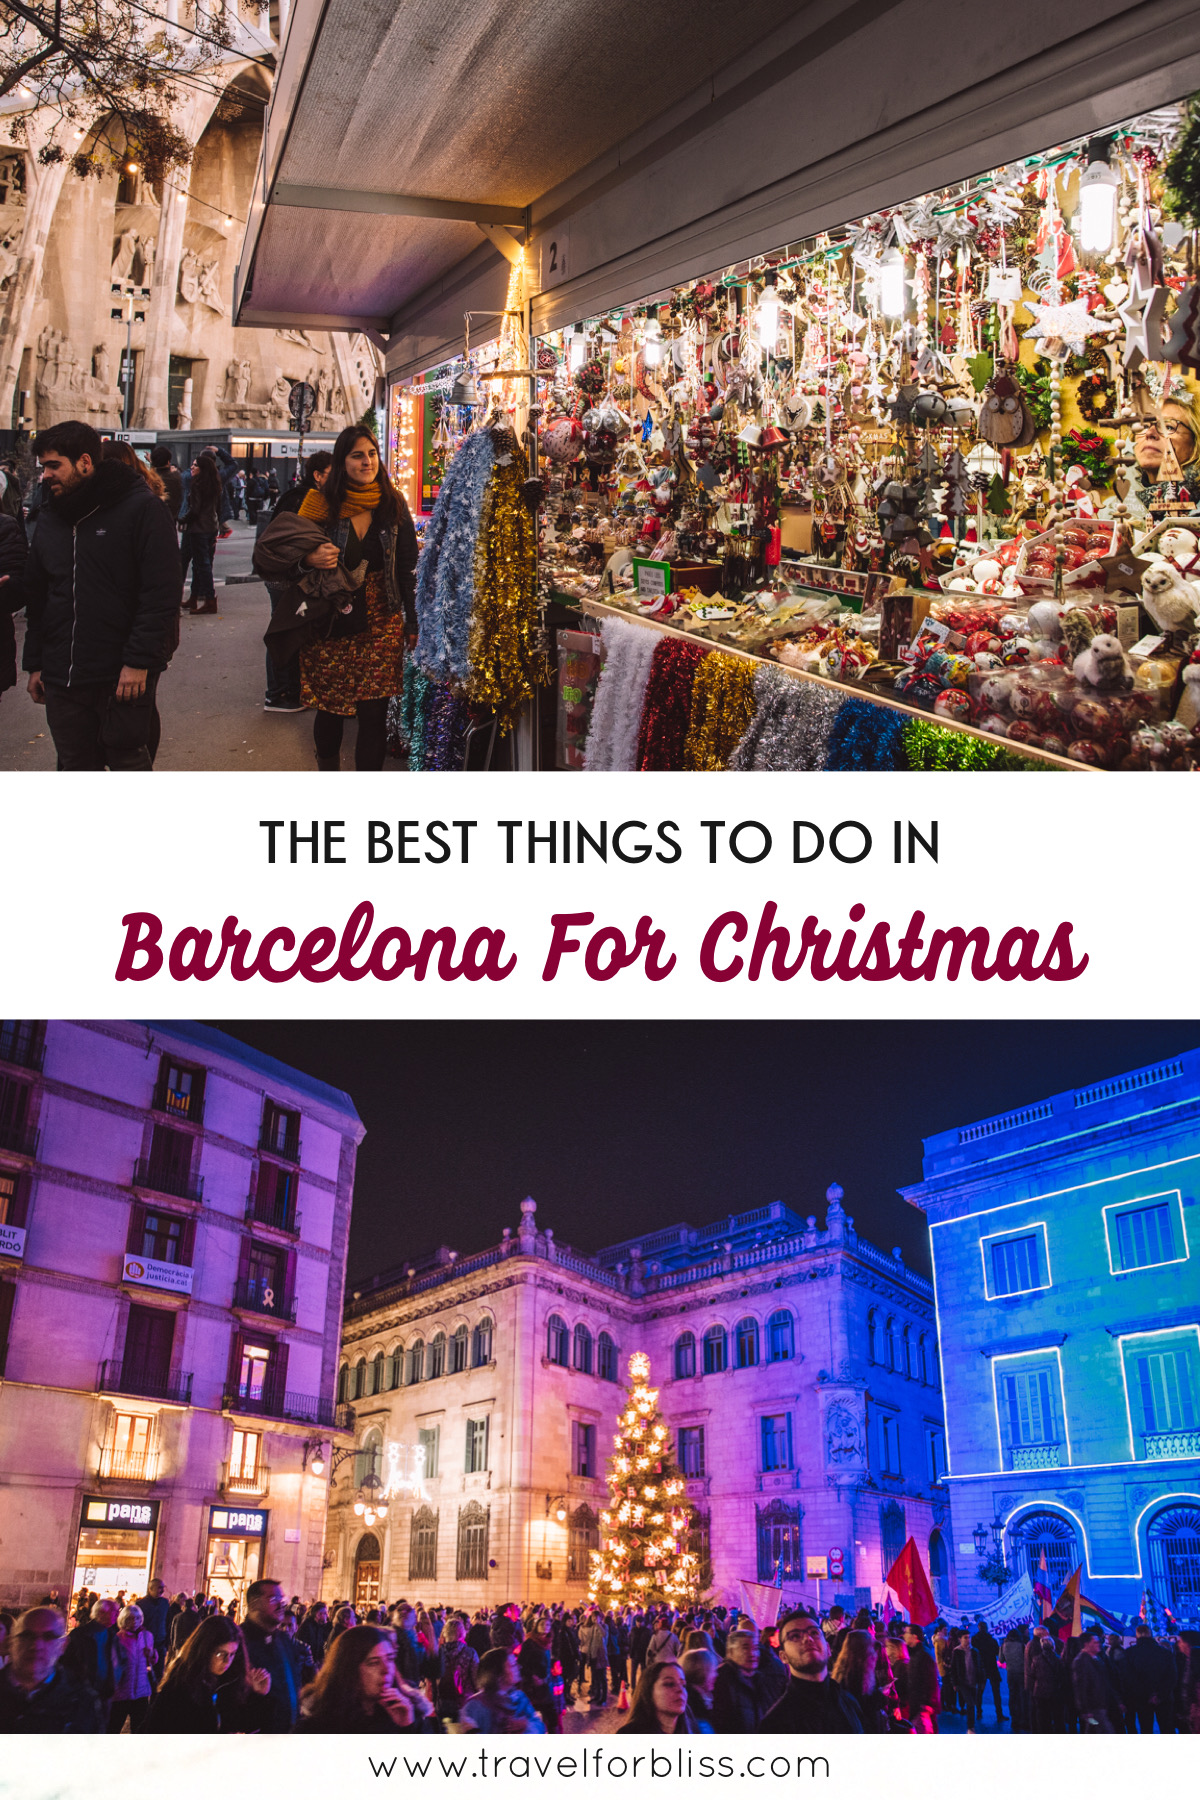 Discover the best things to do in Barcelona for Christmas. Find out what to do in Barcelona for Christmas.